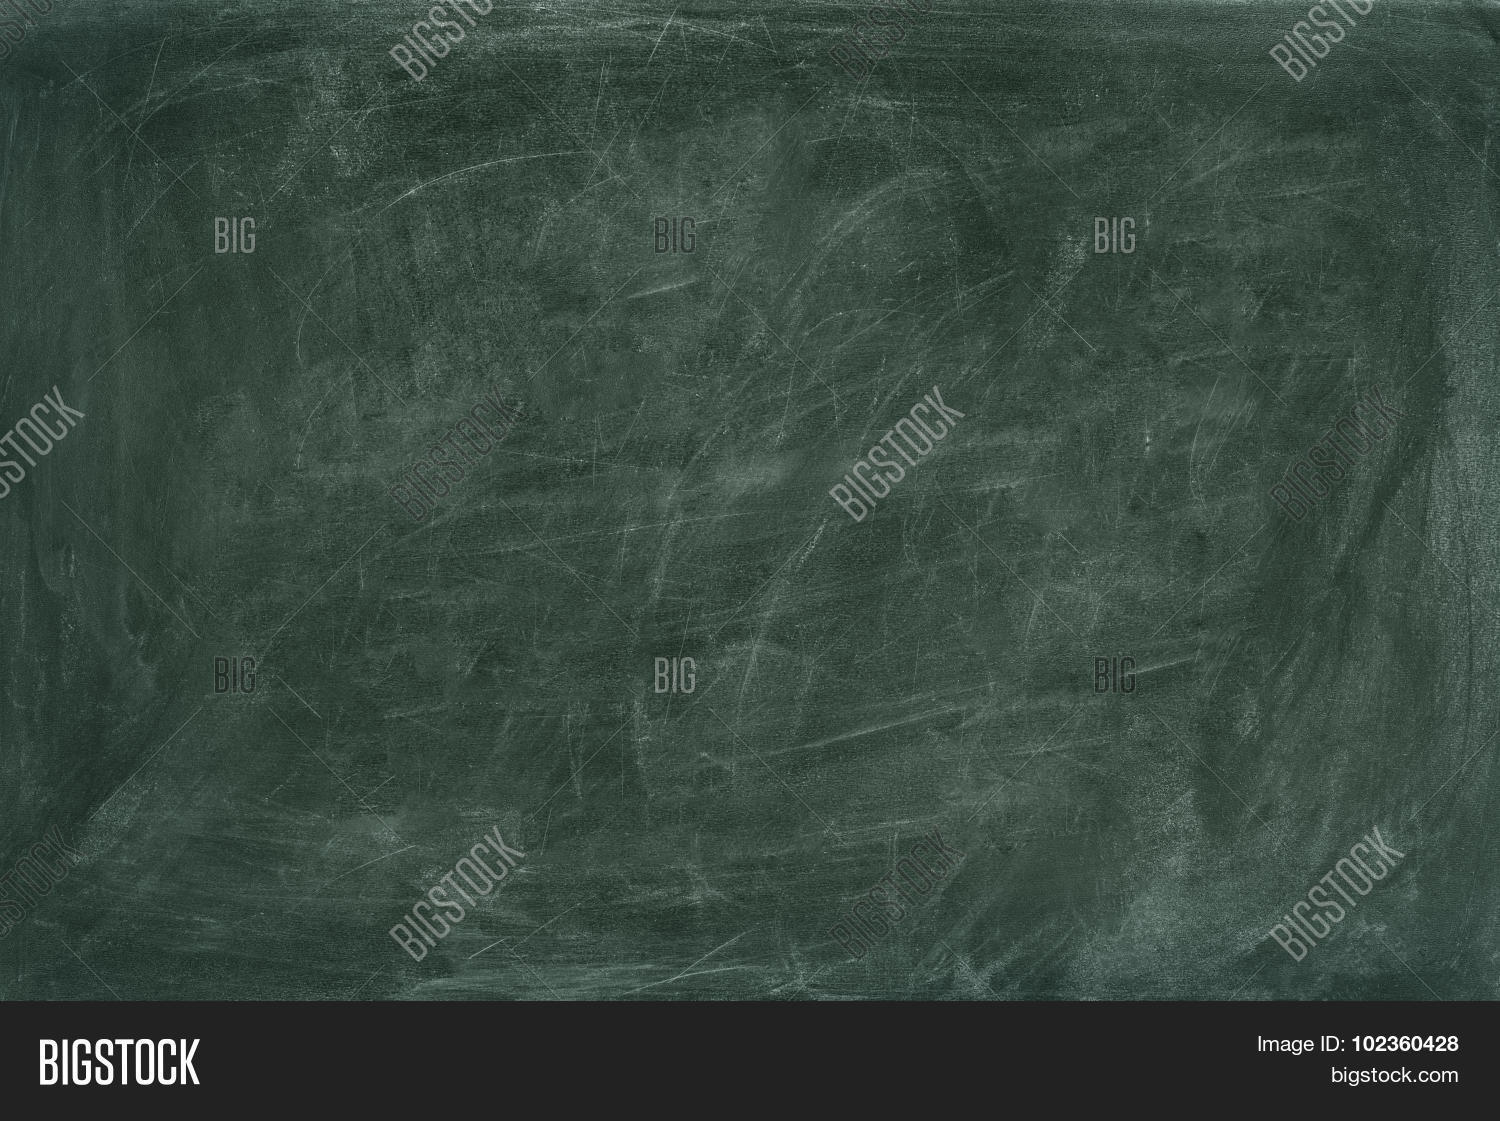 Scratched Greenboard Copy Space High Resolution Background